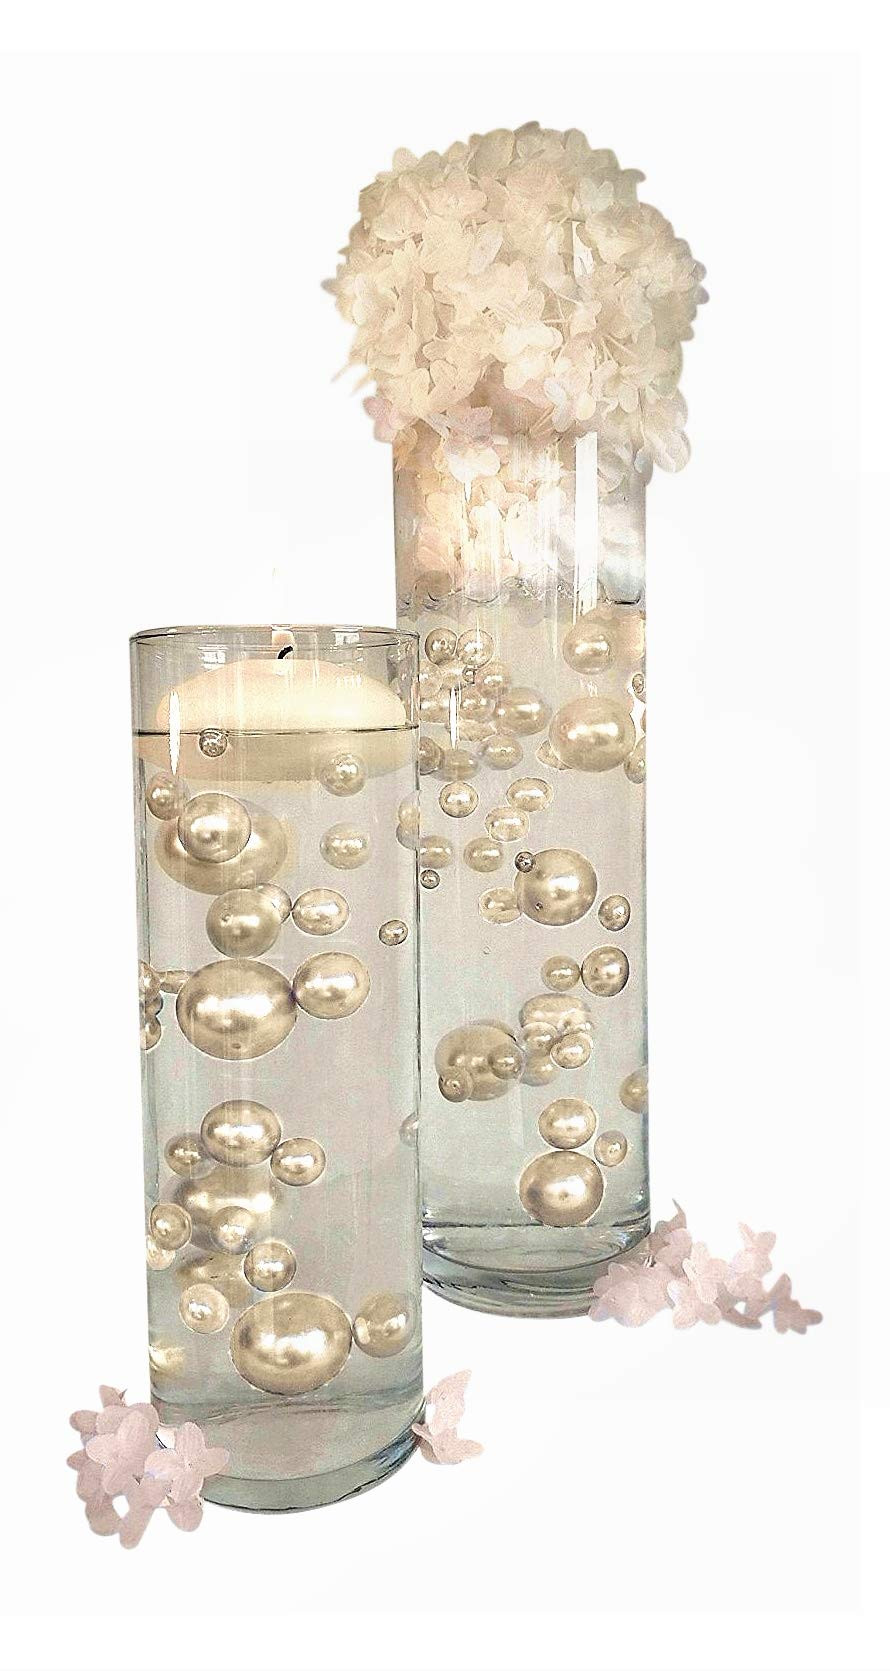 gold pearl vase fillers of best floating pearls for centerpieces amazon com pertaining to floating no hole ivory pearls jumbo assorted sizes vase fillers for centerpieces decorations includes transparent water gels for floating the pearls